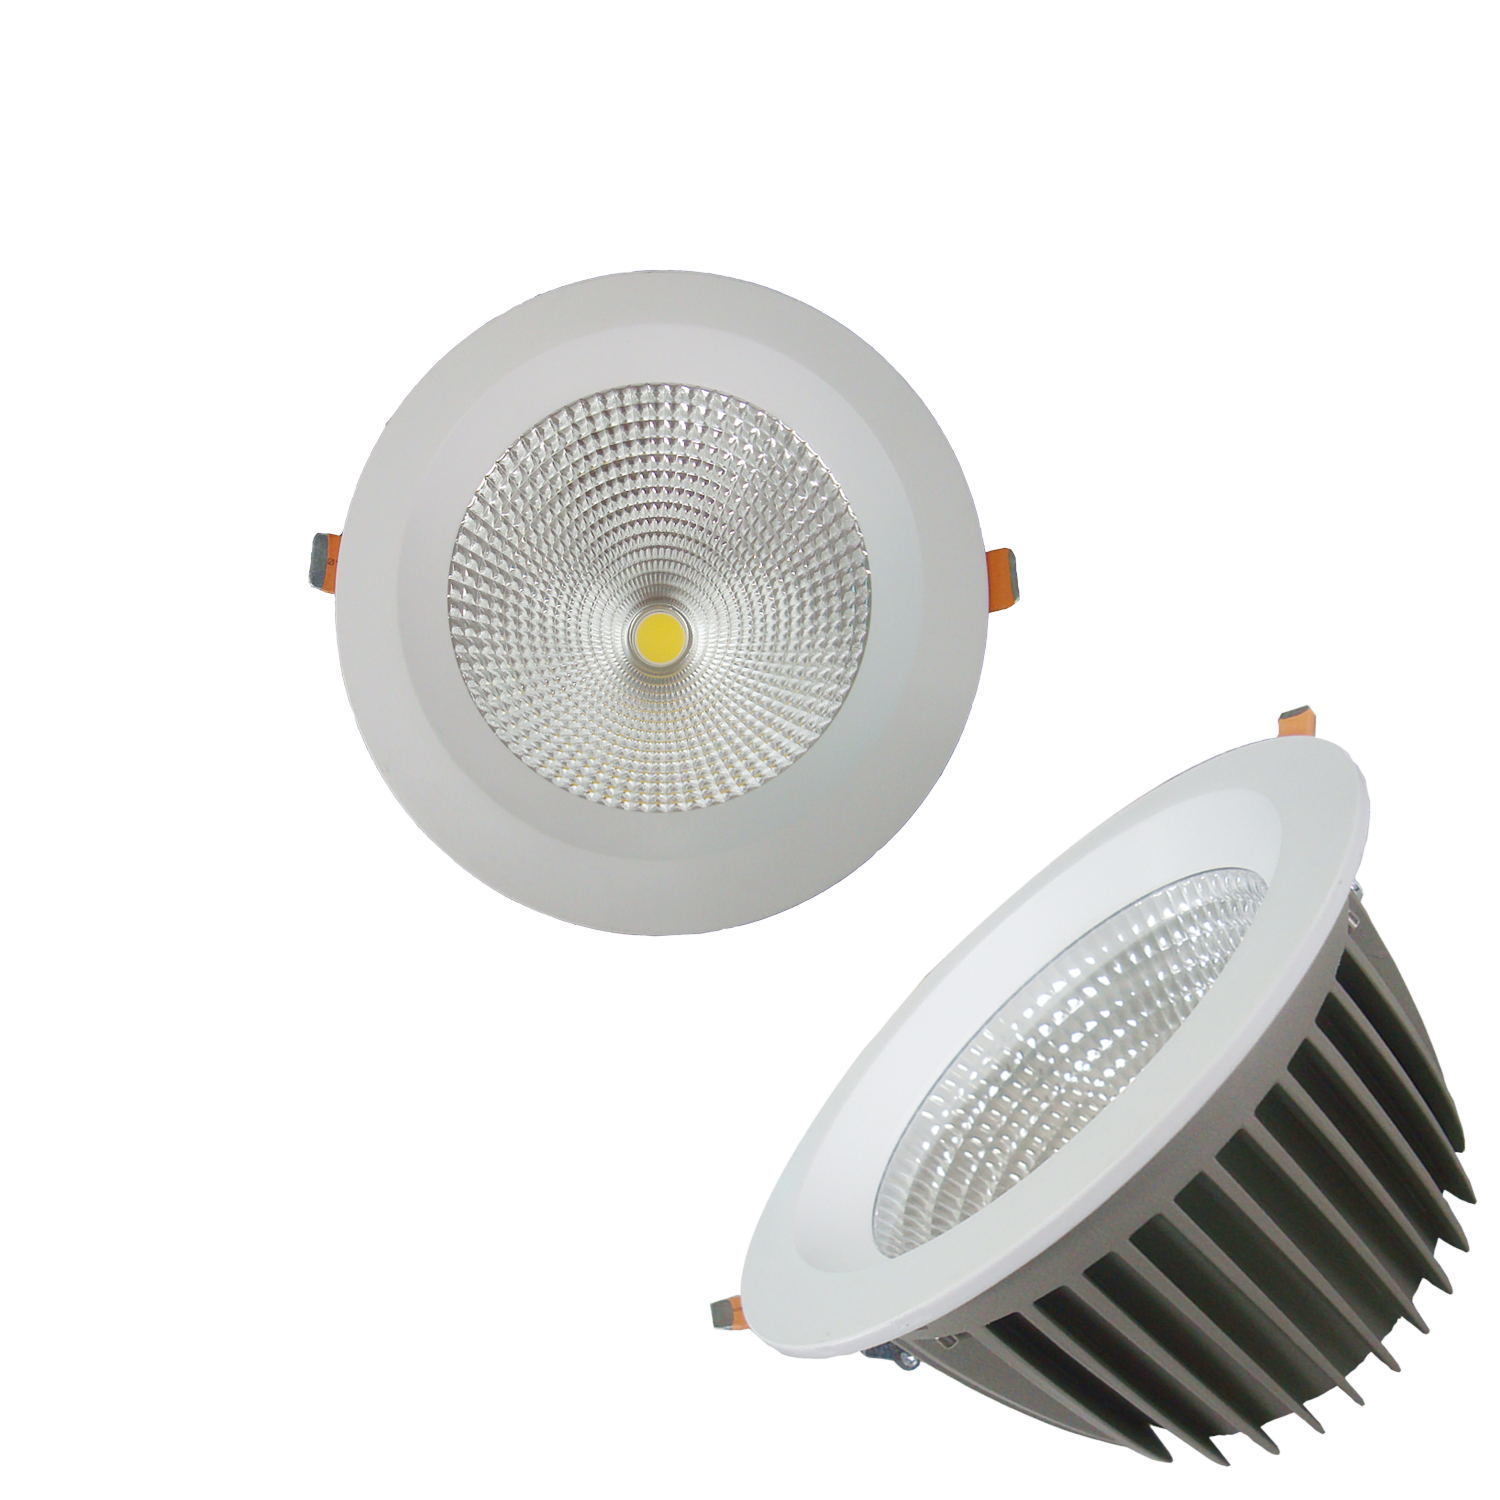 China surface mounted 40w cob led ceiling down light led downlight china surface mounted 40w cob led ceiling down light led downlight china ceiling light cob ceiling light aloadofball Images